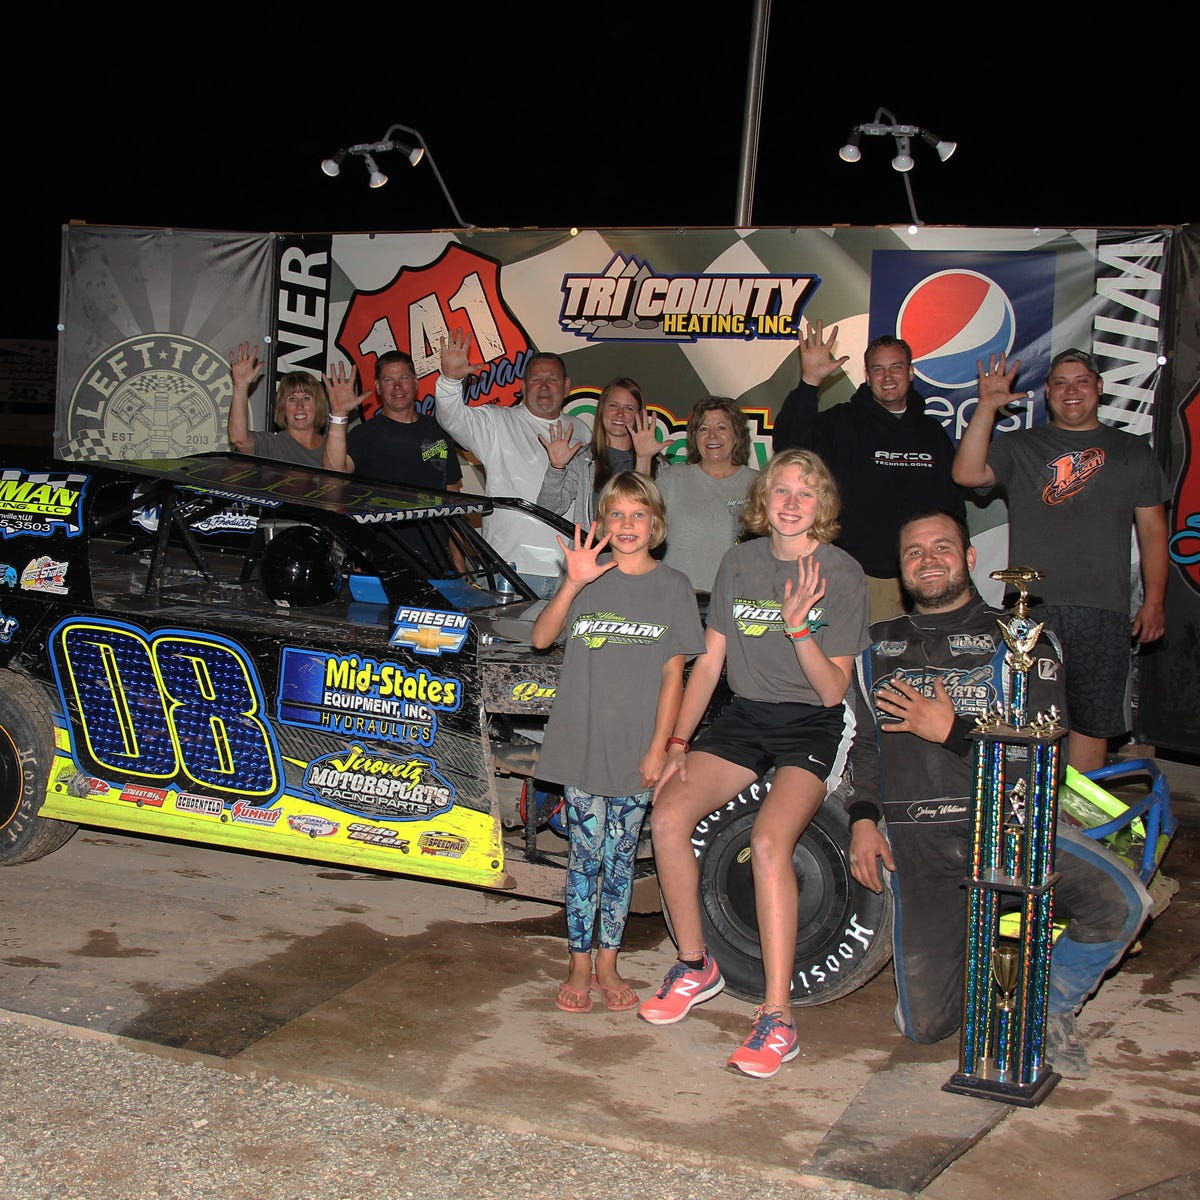 141 Speedway ironman Whitman going for sixth straight IMCA modified title